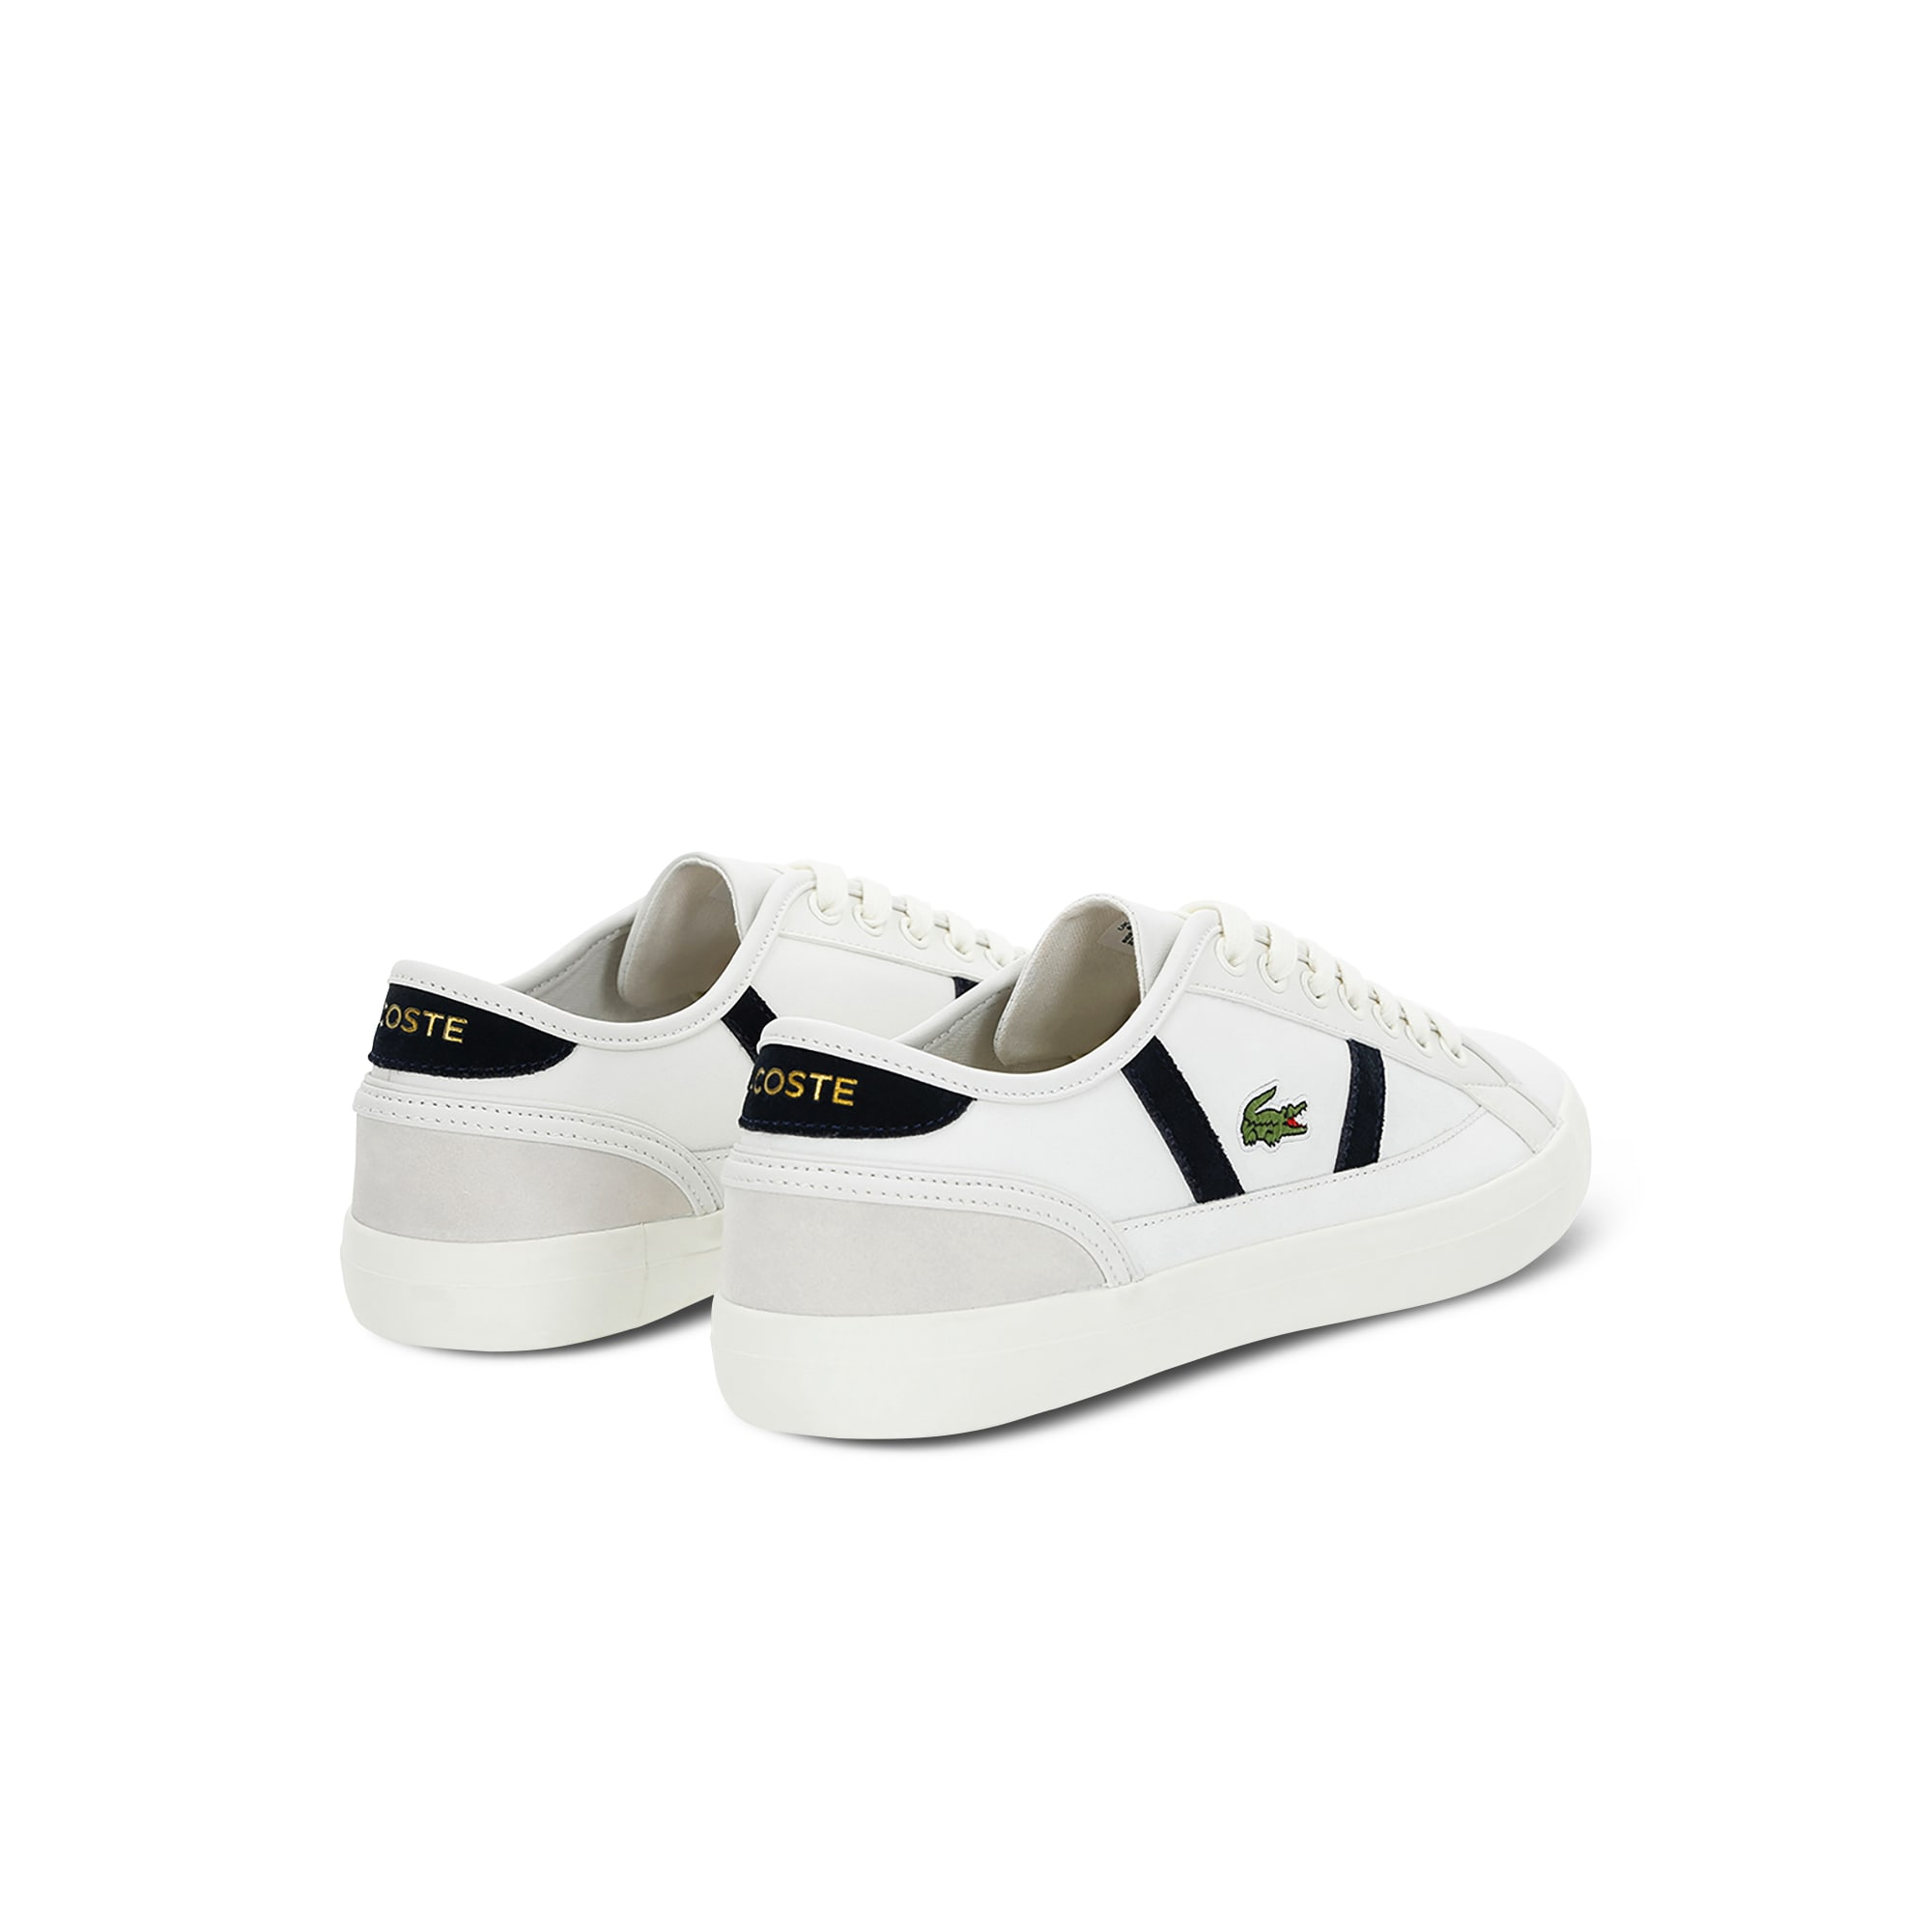 494efdd2a Men s Sideline Leather and Suede Sneakers